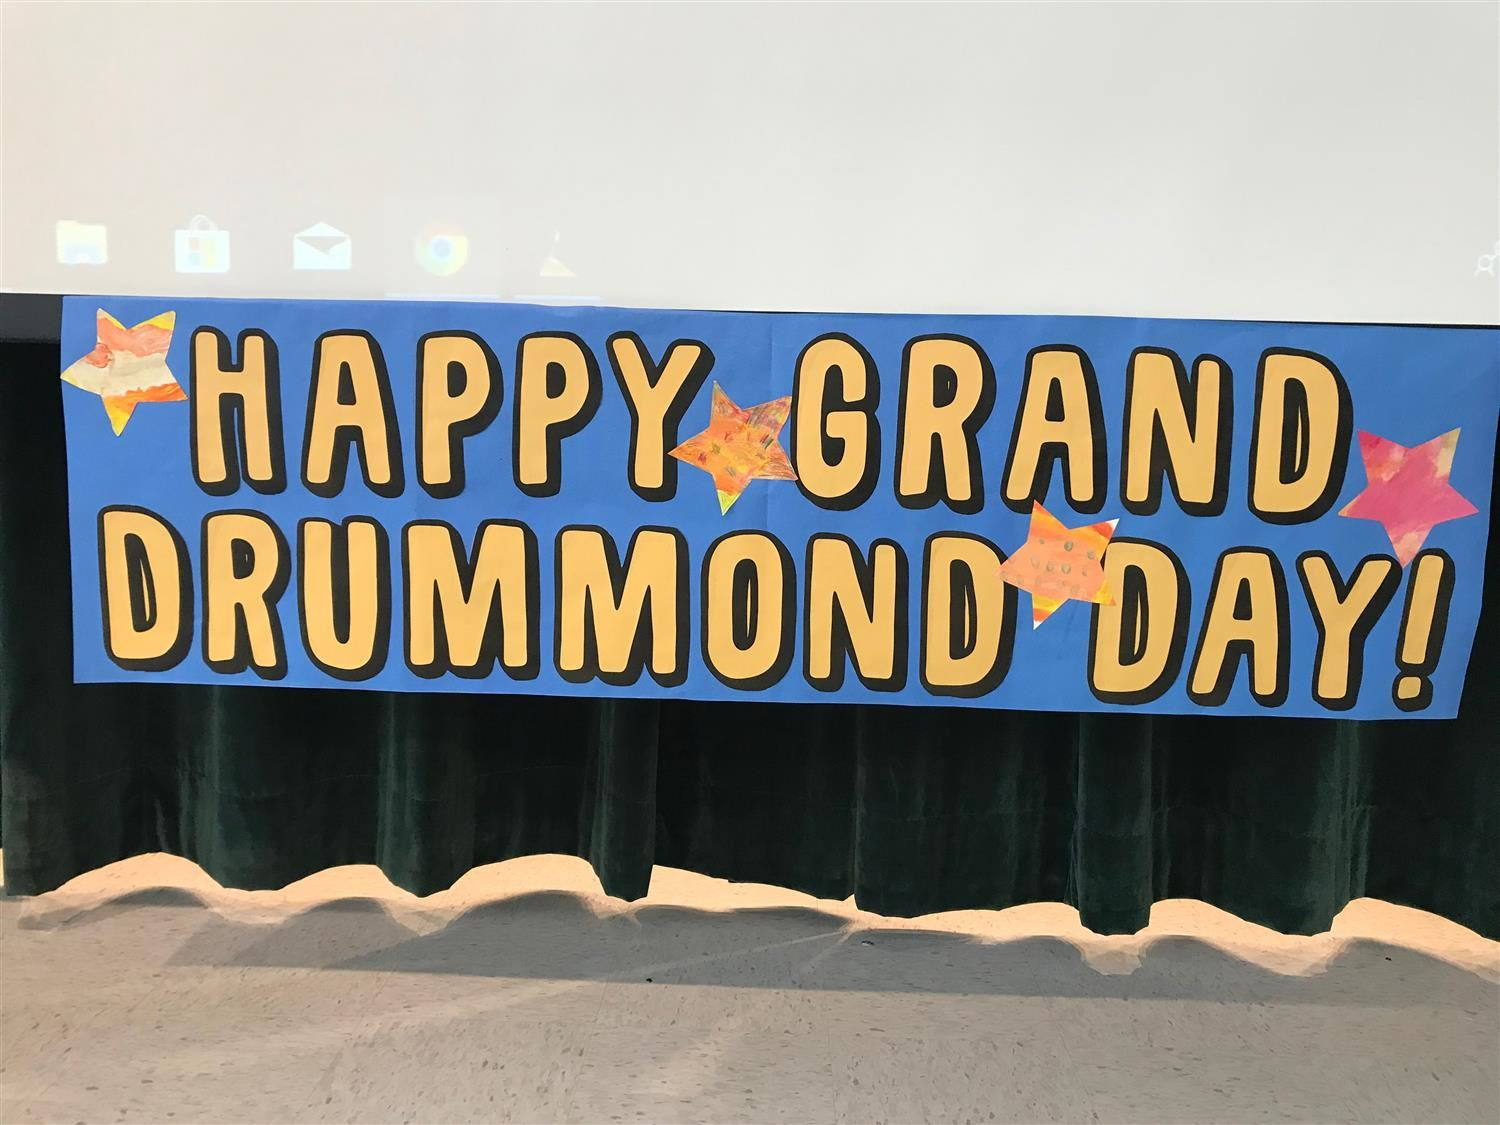 Grand Drummond Day!